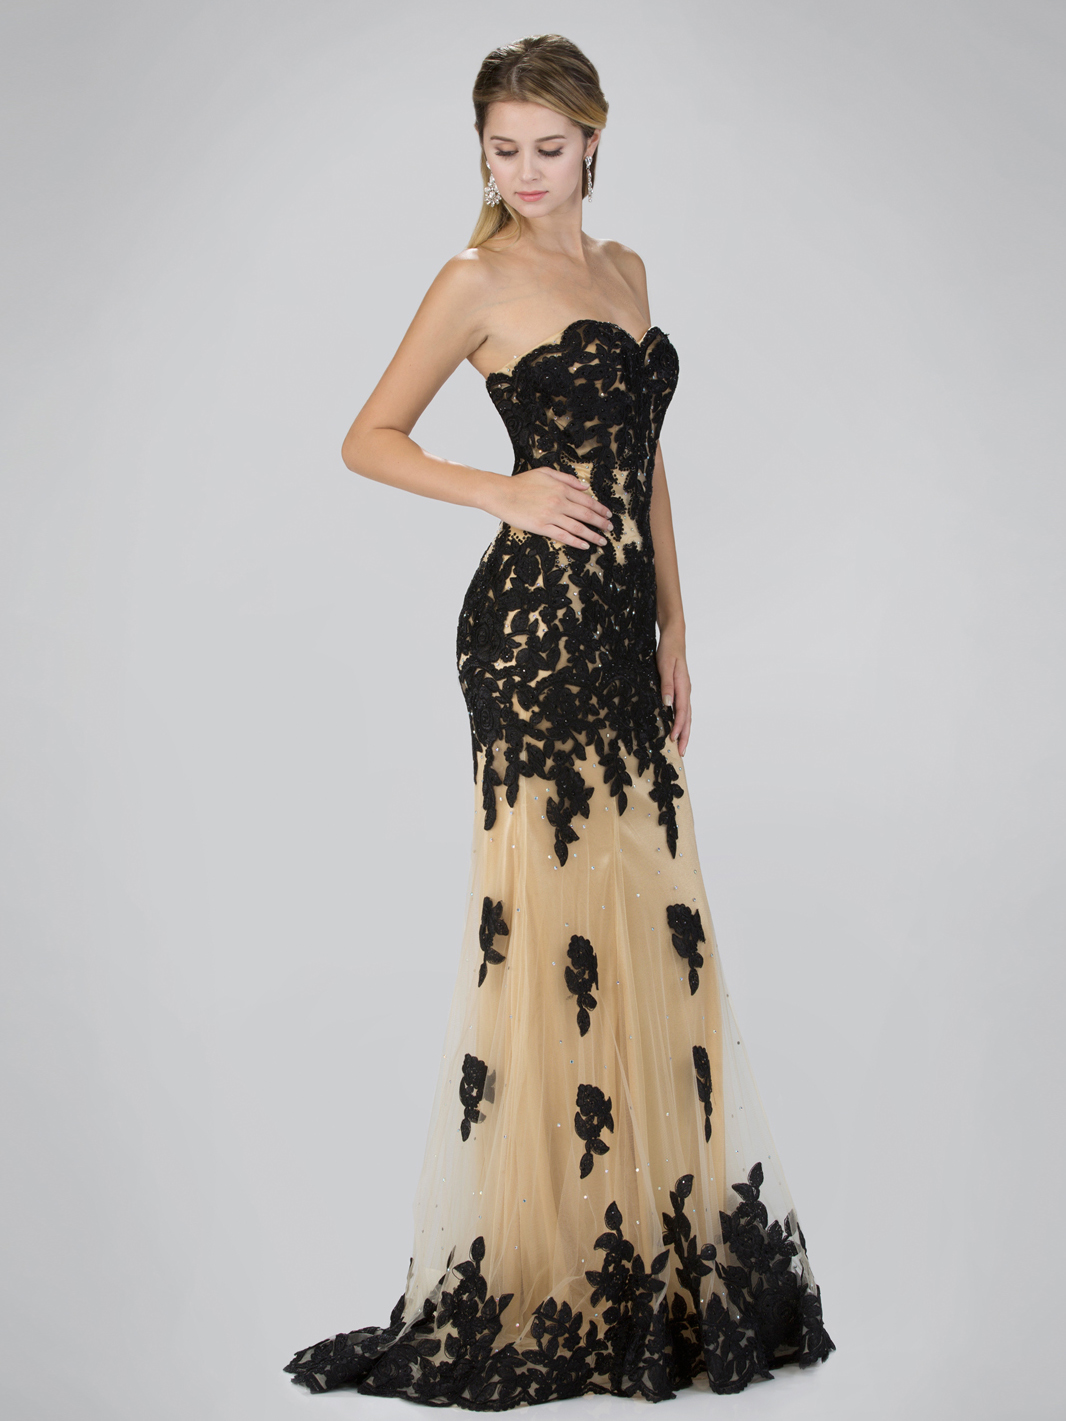 Strapless Sweetheart Prom Evening Dress with Lace Applique | Sung ...